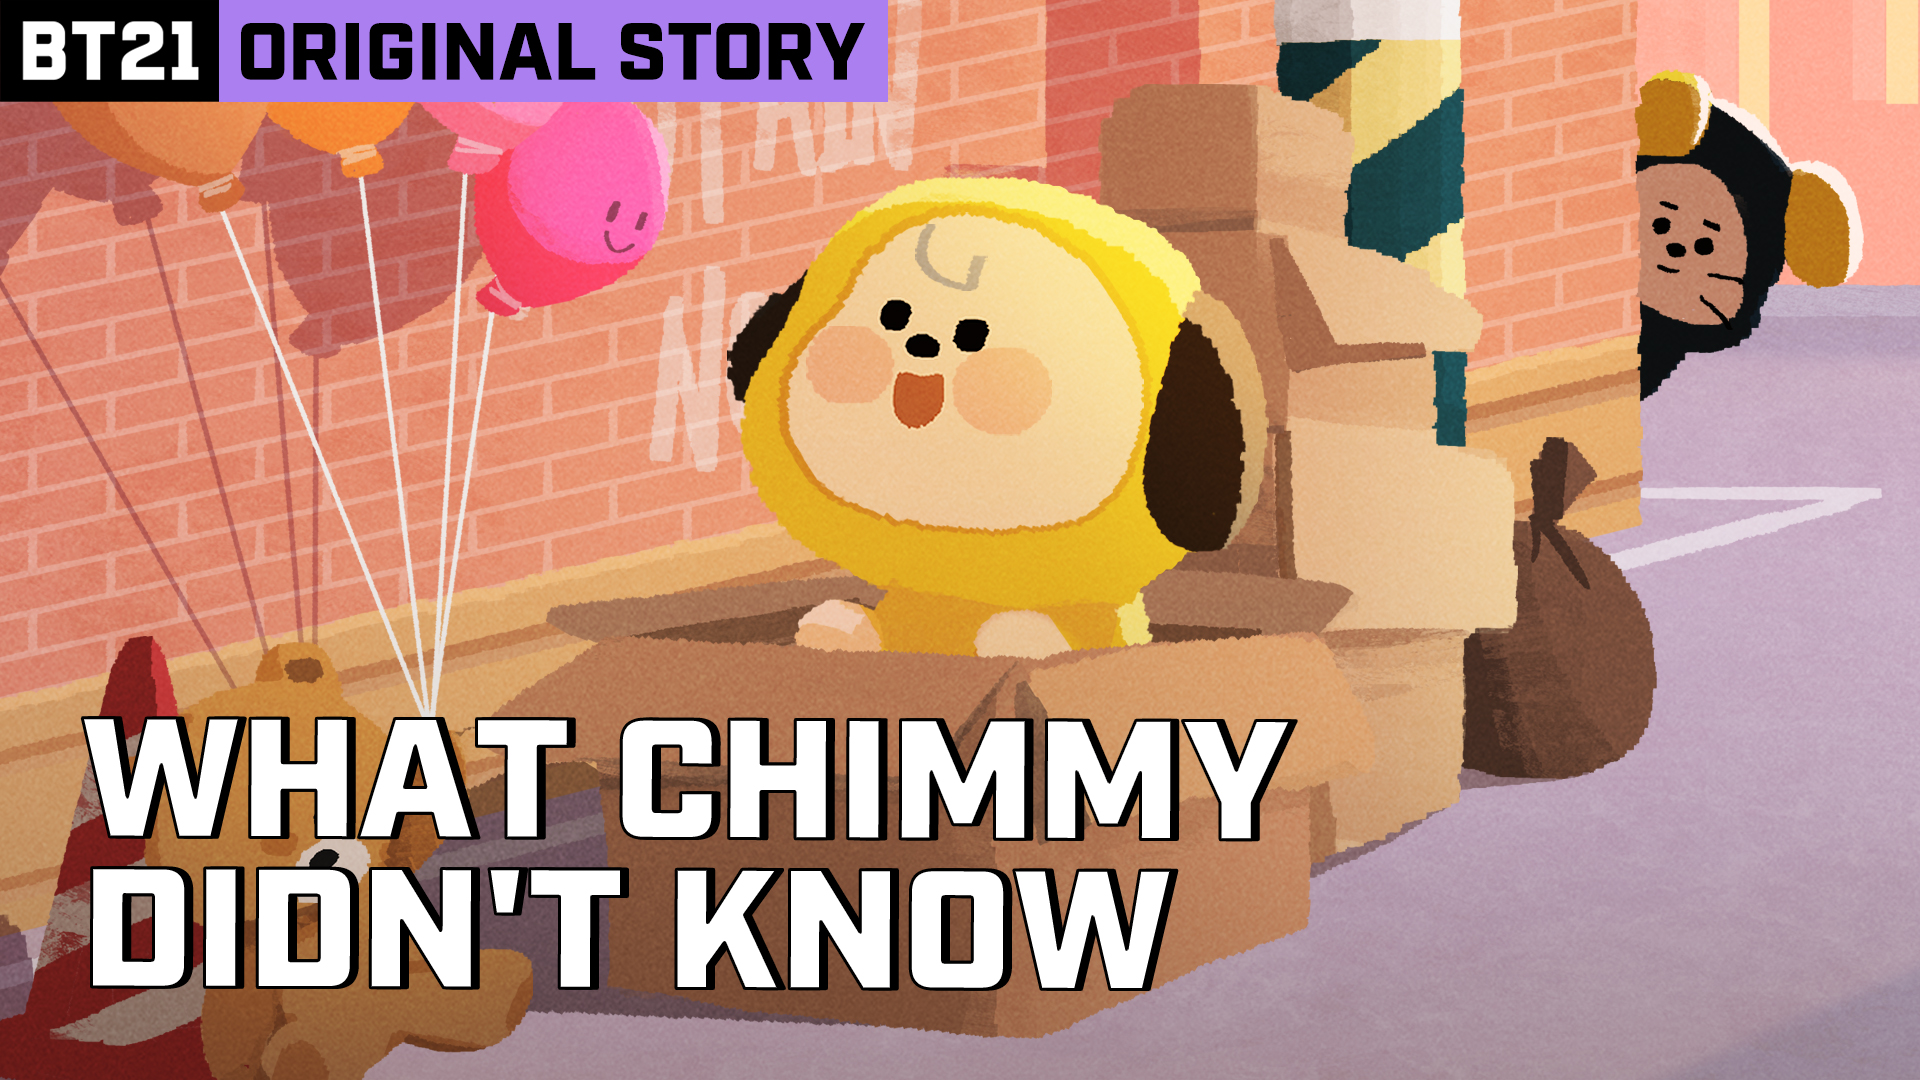 BT21 ORIGINAL STORY EP.01 - CHIMMY & CHIEF